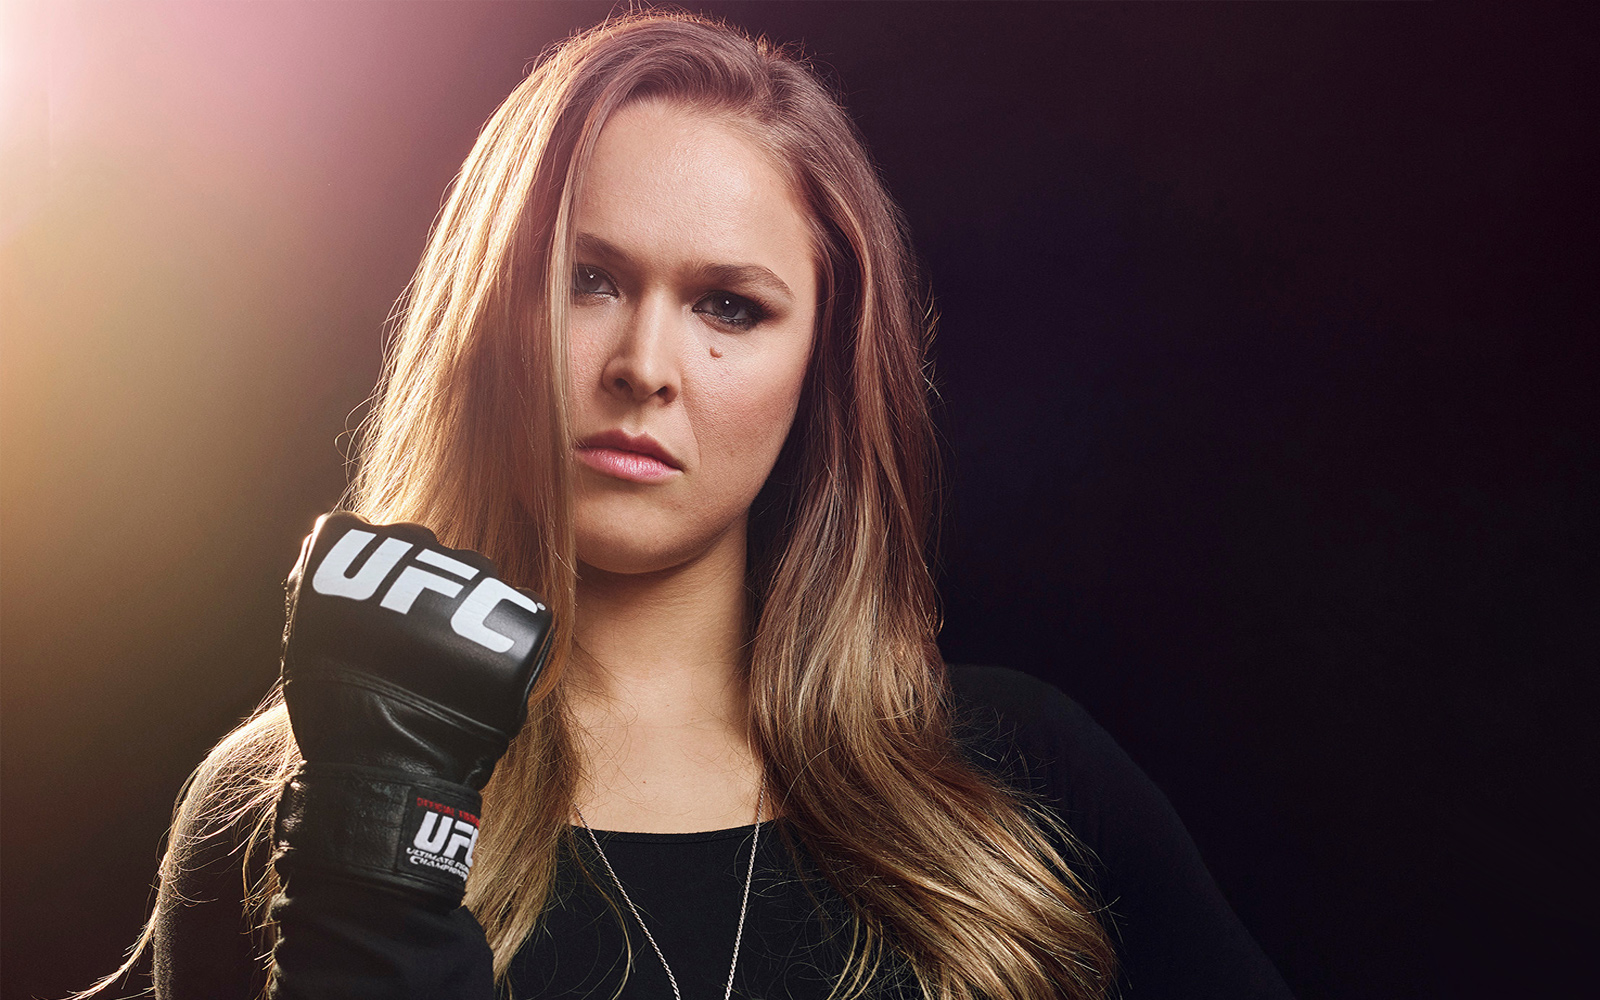 RONDA ROUSEY AND WWE: WHY WOMEN COULD MAIN EVENT WRESTLEMANIA 35